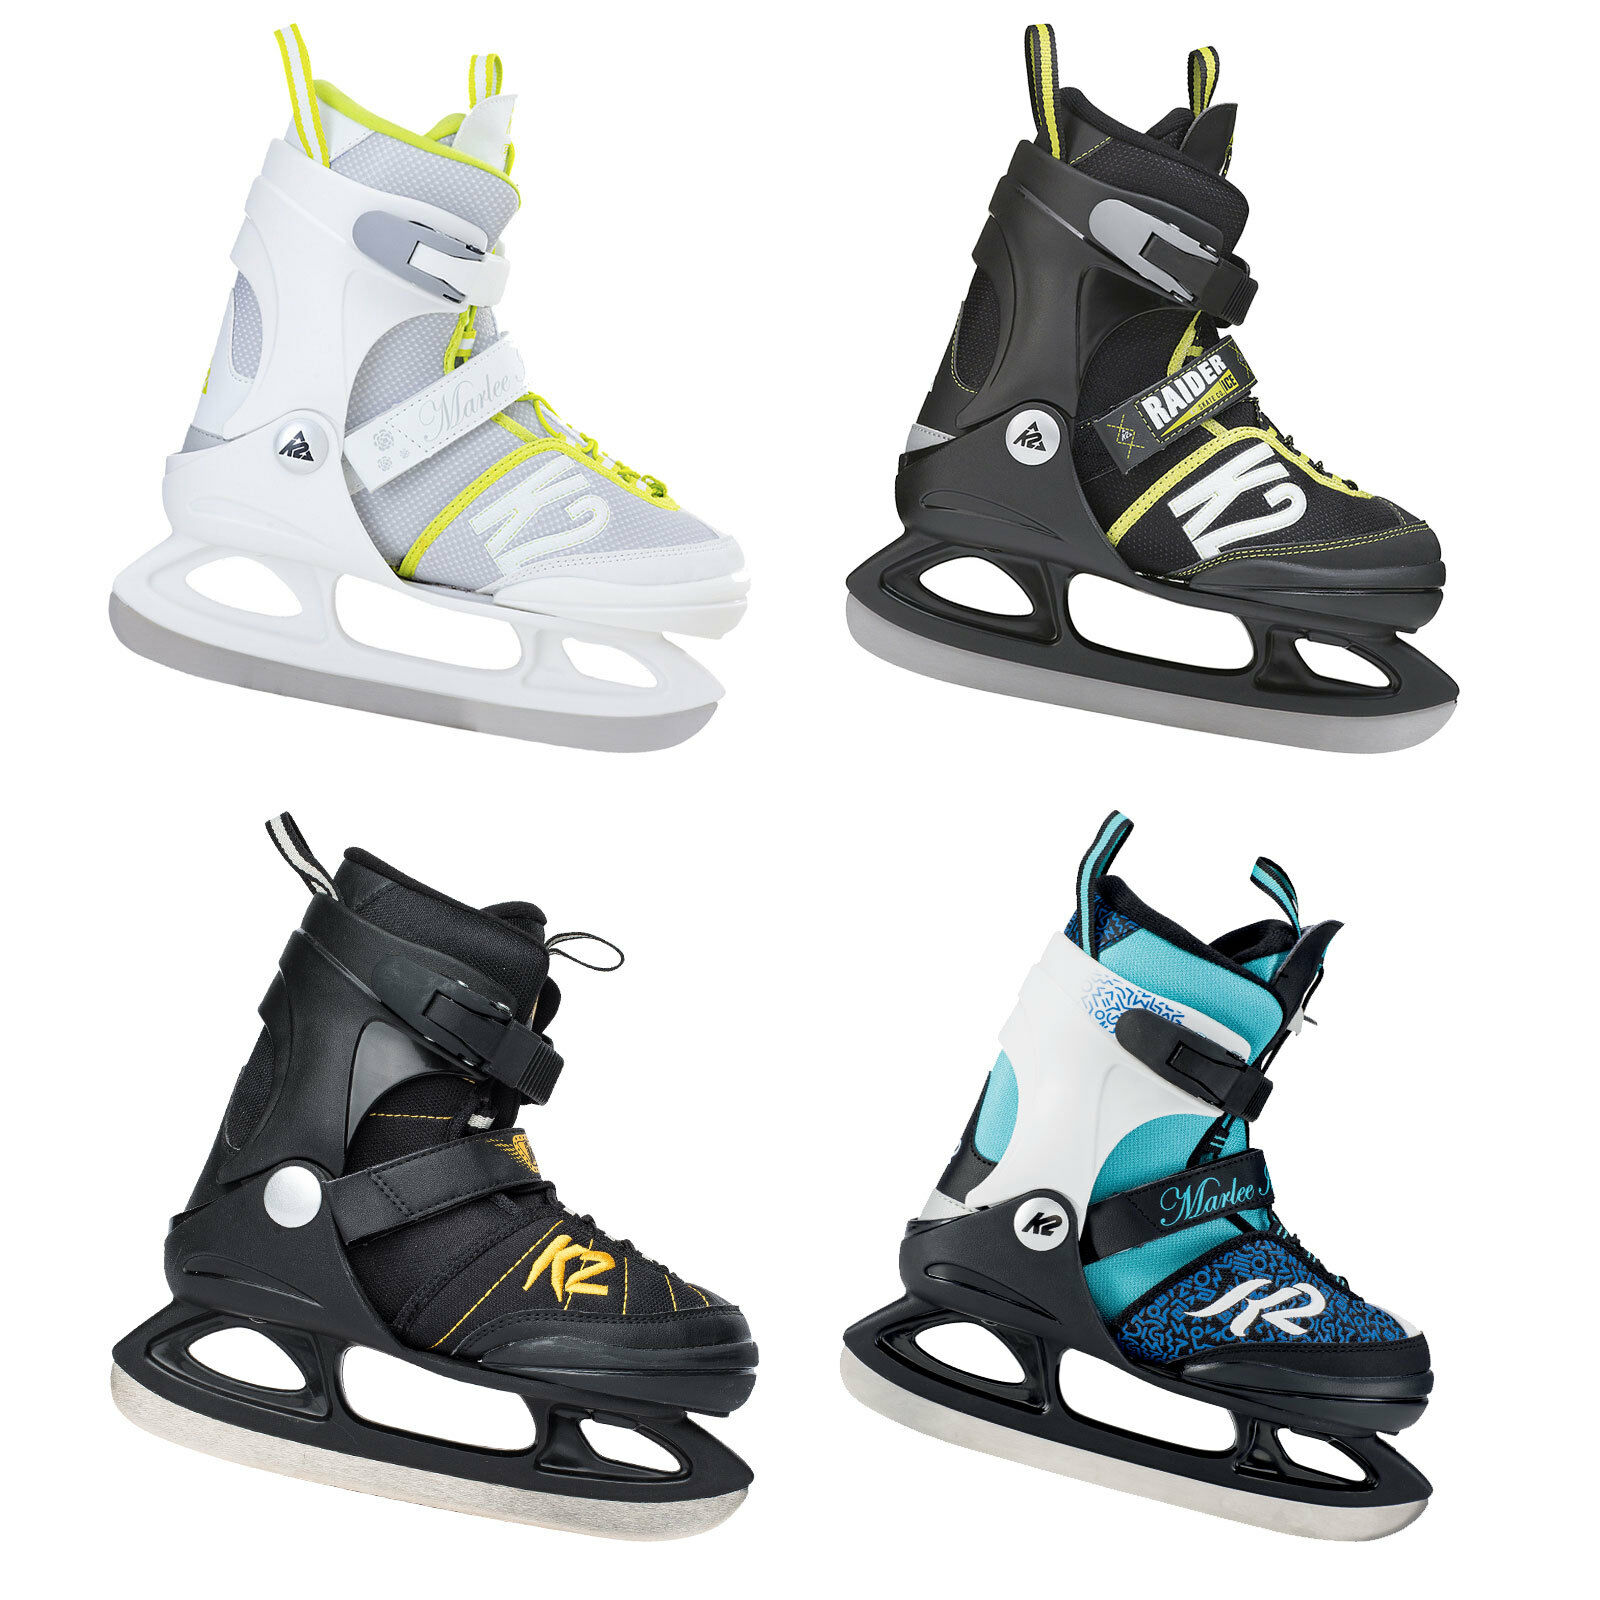 Bleu Pointure K2 Skates Marlee Ice Patins /à Glace pour Fille Camouflage